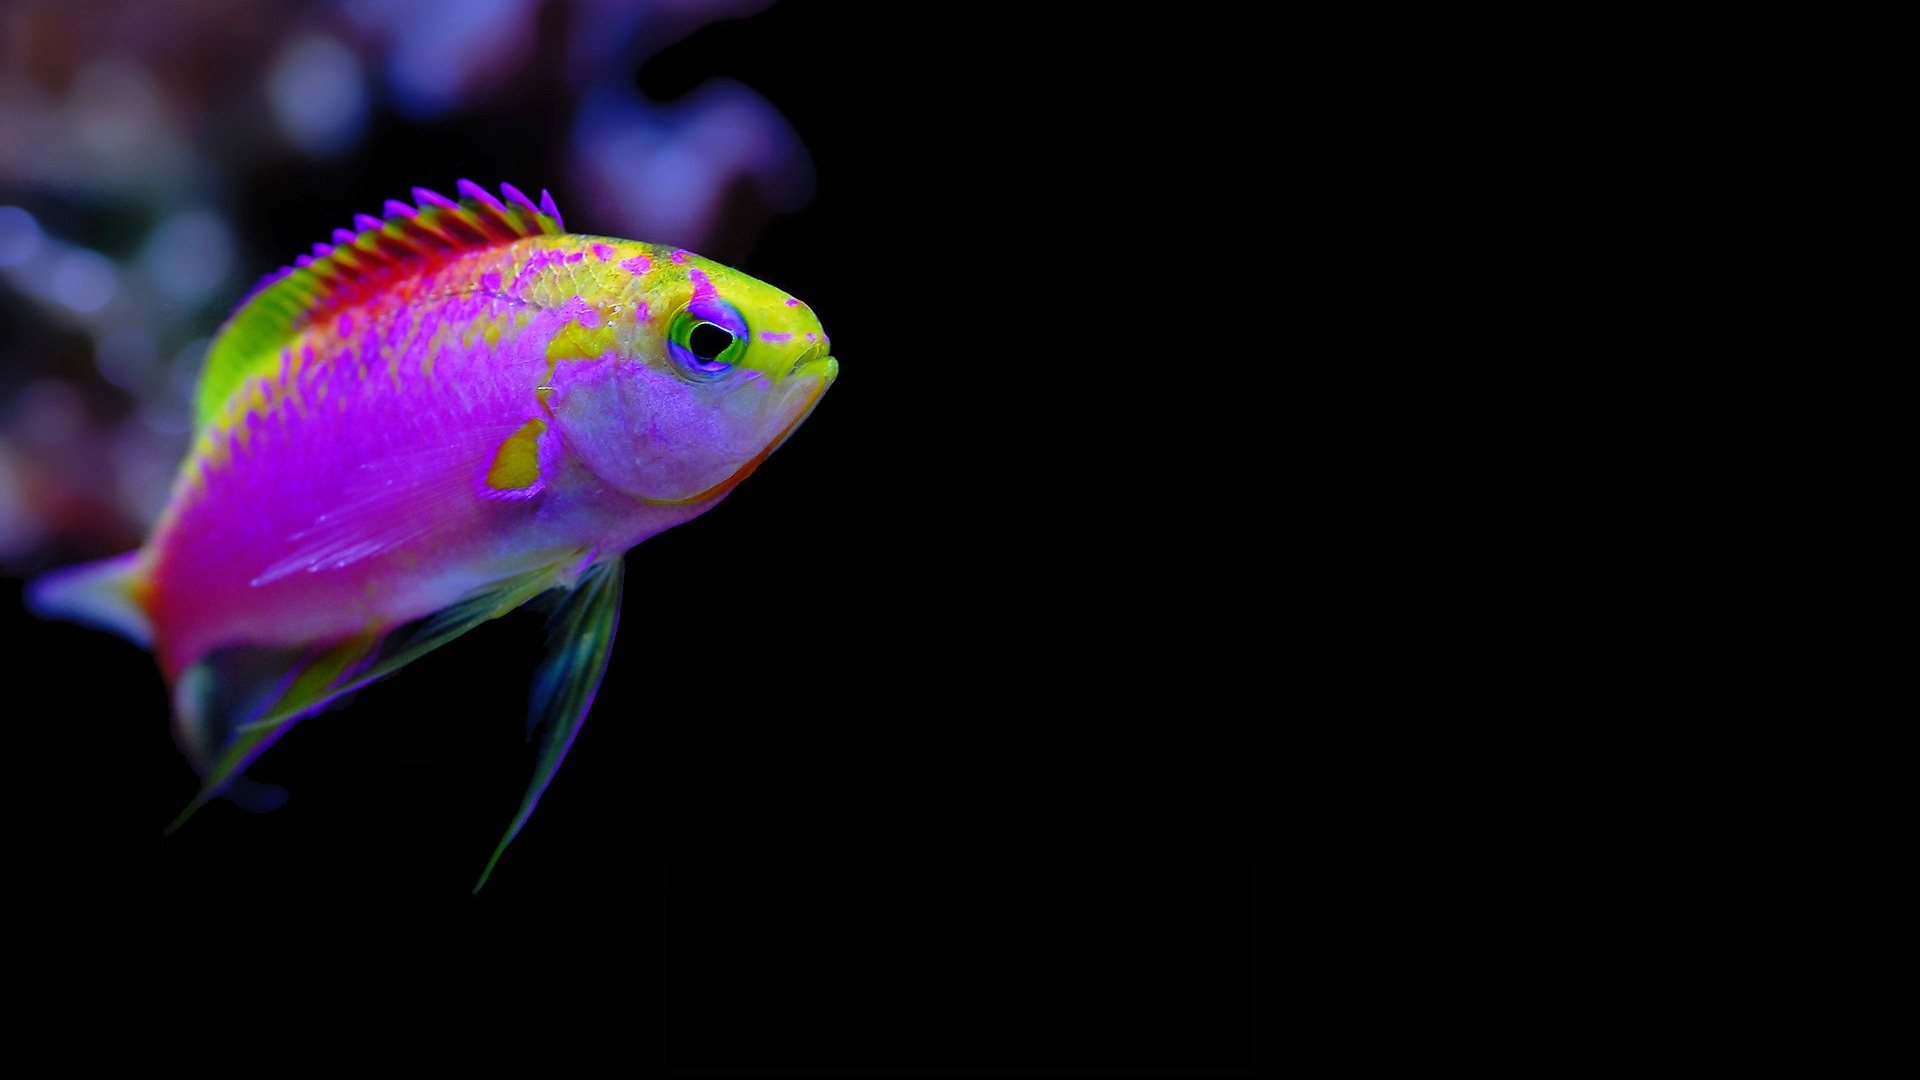 Fish Underwater Cartelthemes Wallpaper 1920x1080 Full HD Wallpapers 1920x1080